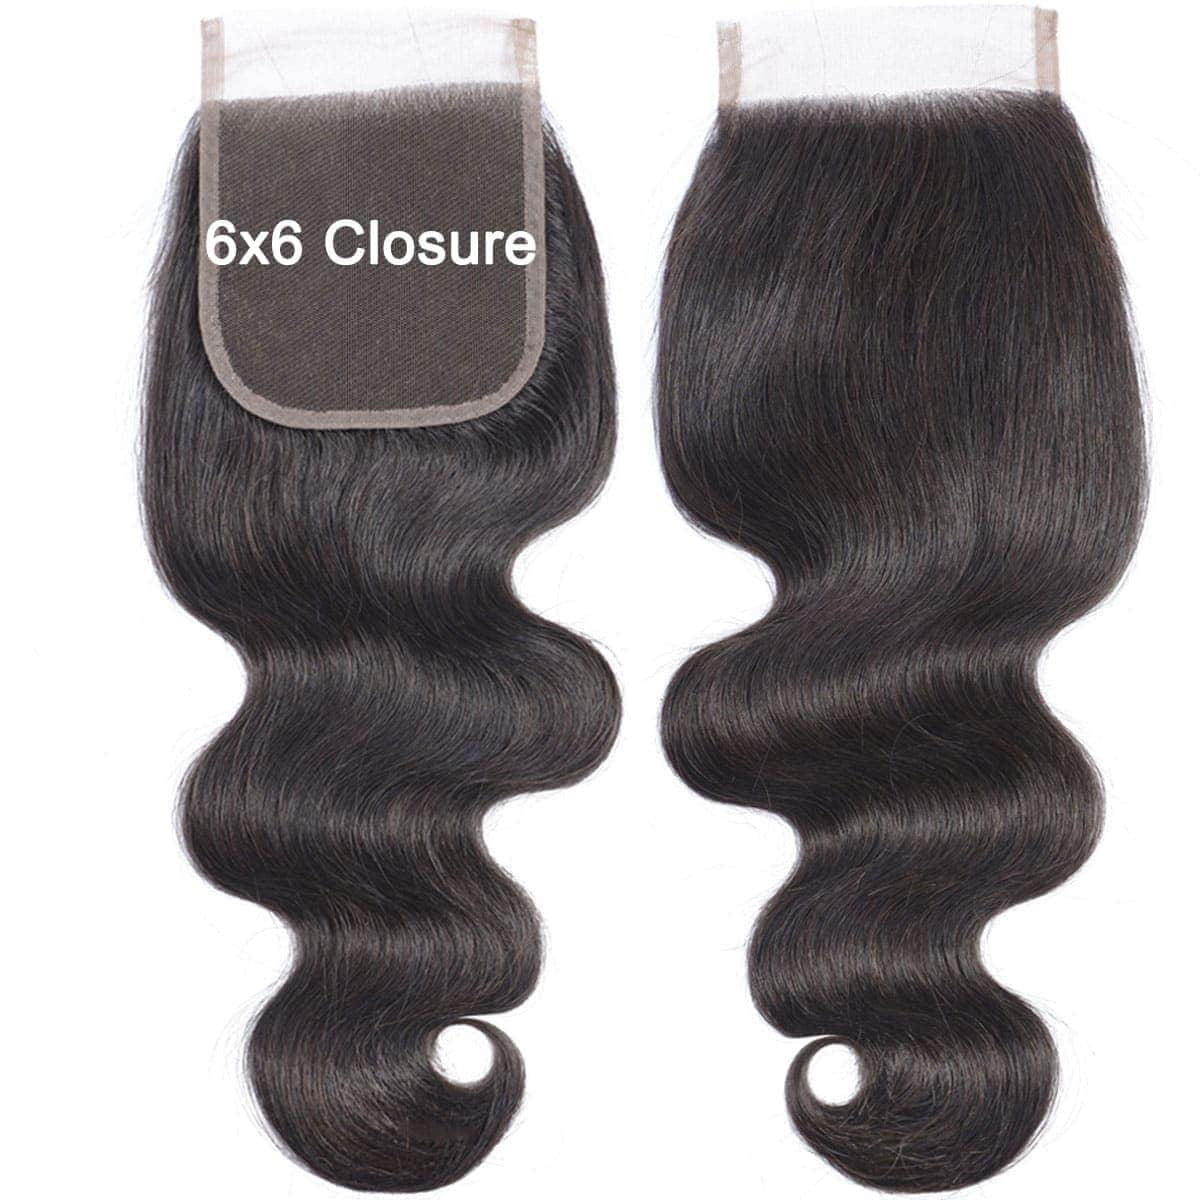 Body Wave 6x6 Closures